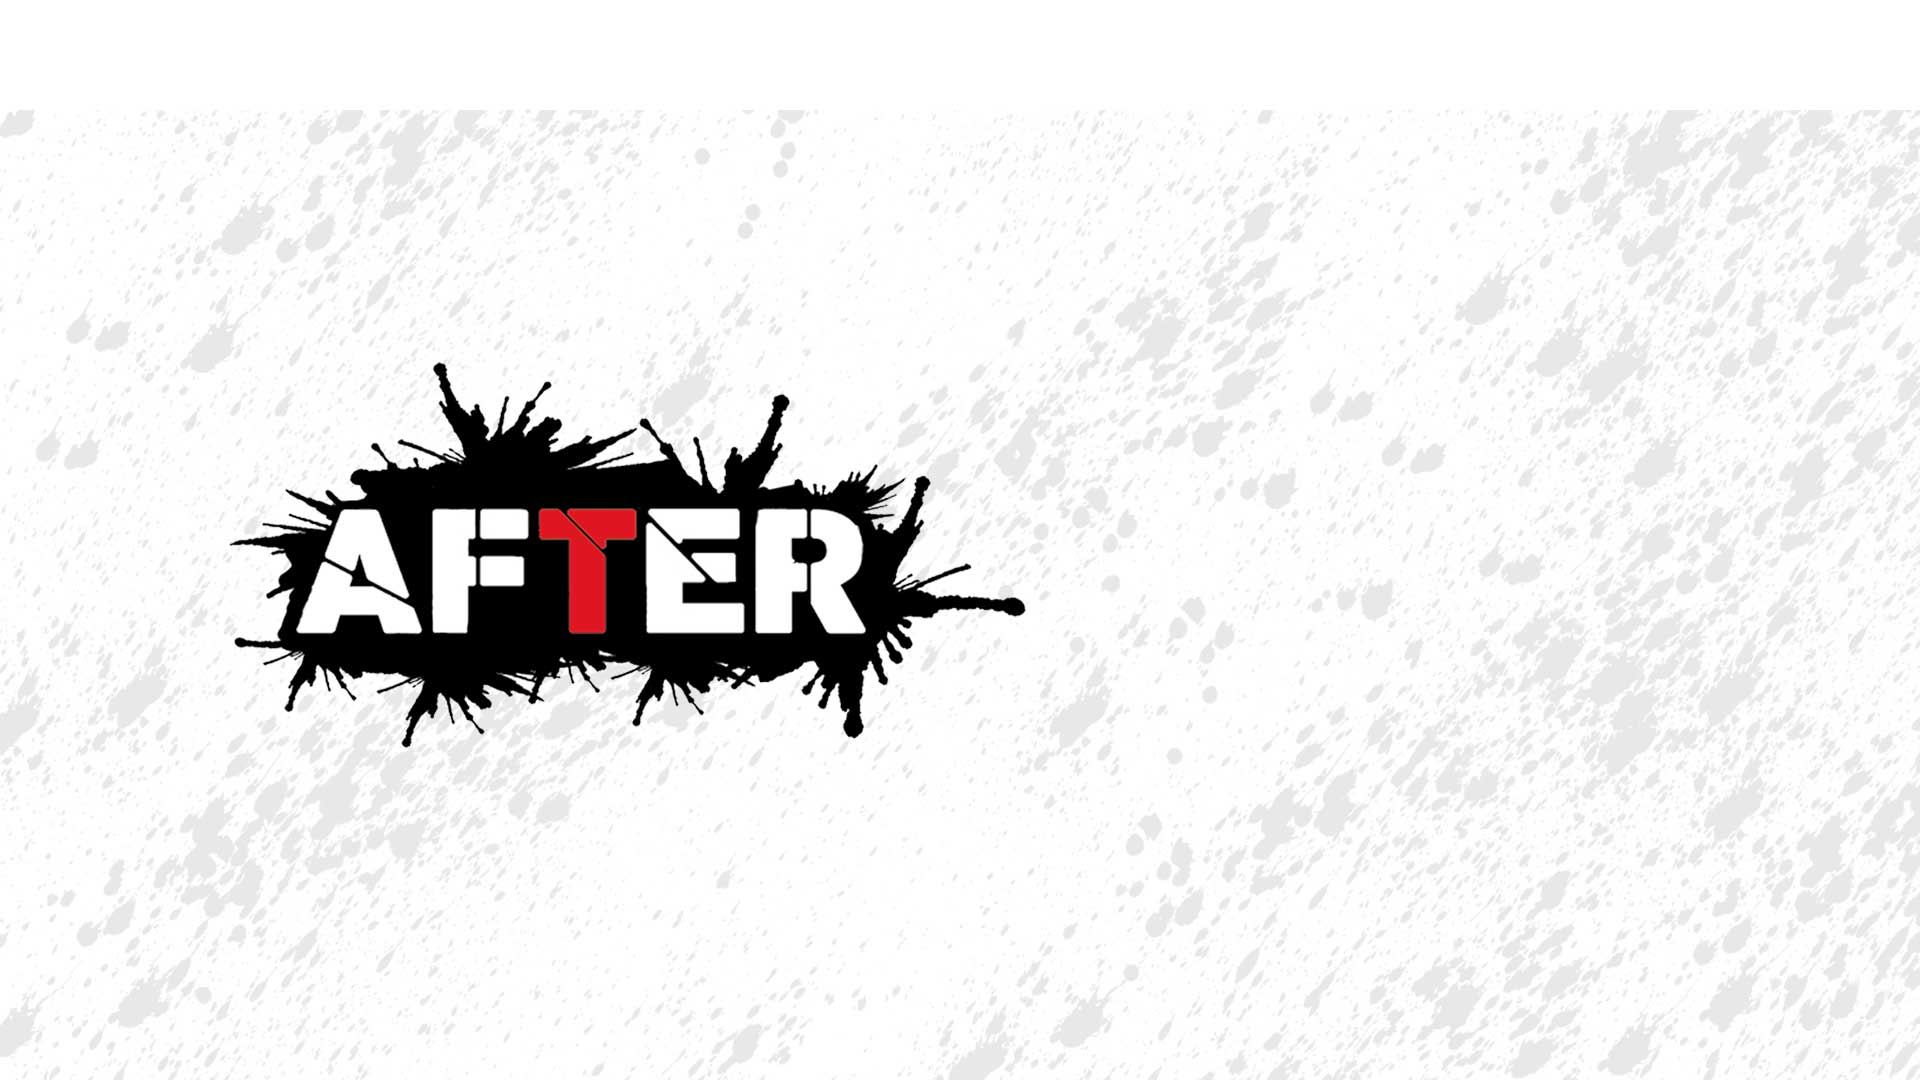 Bienvenue sur le site d'AFTER !